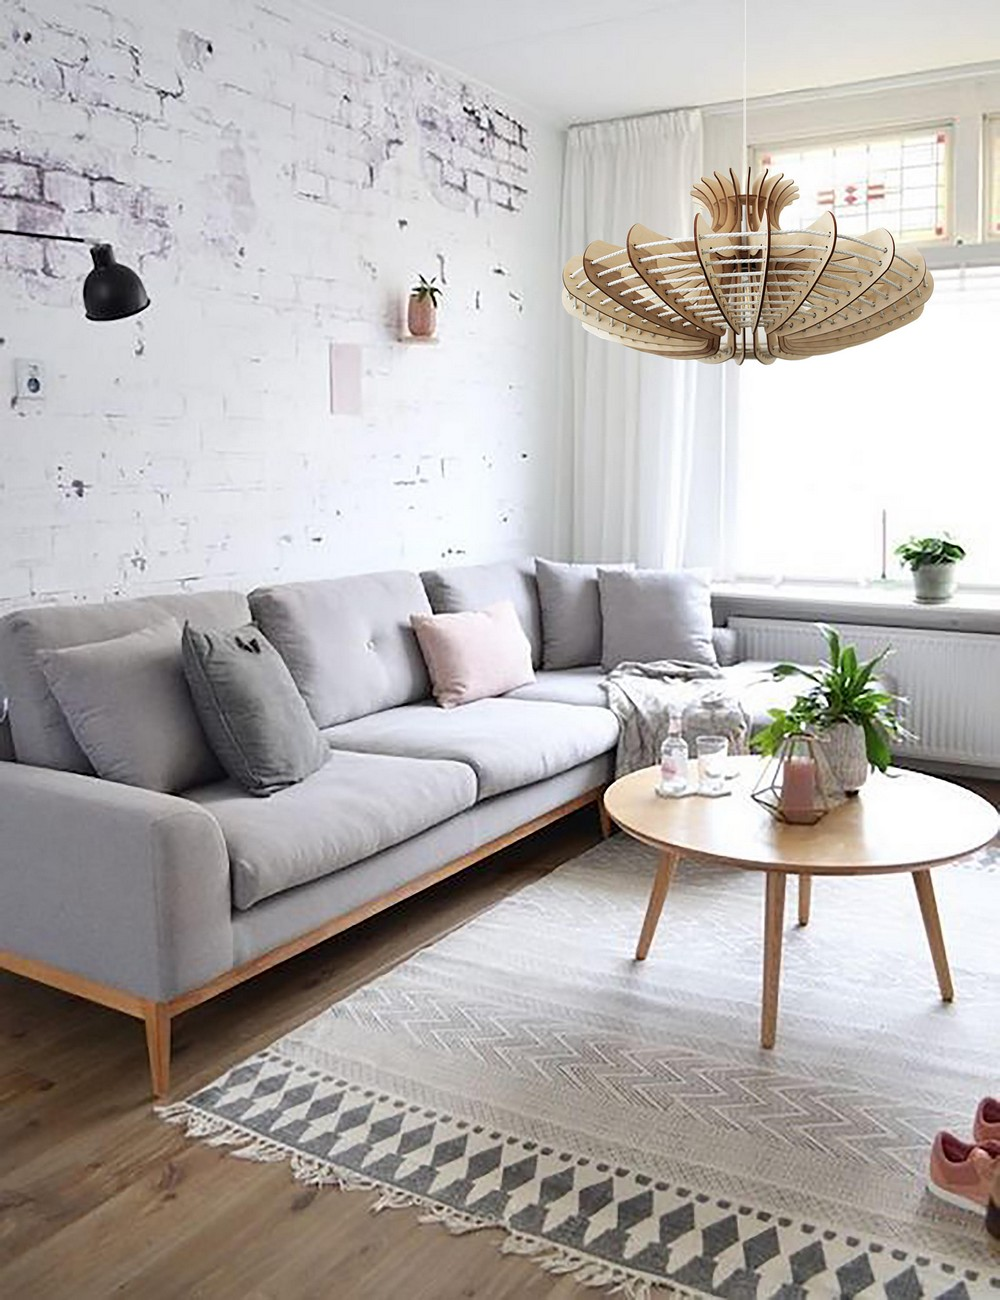 8 Scandinavian Living Room Ideas for a Transformative Interior Decor 4 living room ideas 8 Scandinavian Living Room Ideas for a Transformative Interior Decor 8 Scandinavian Living Room Ideas for a Transformative Interior Decor 4